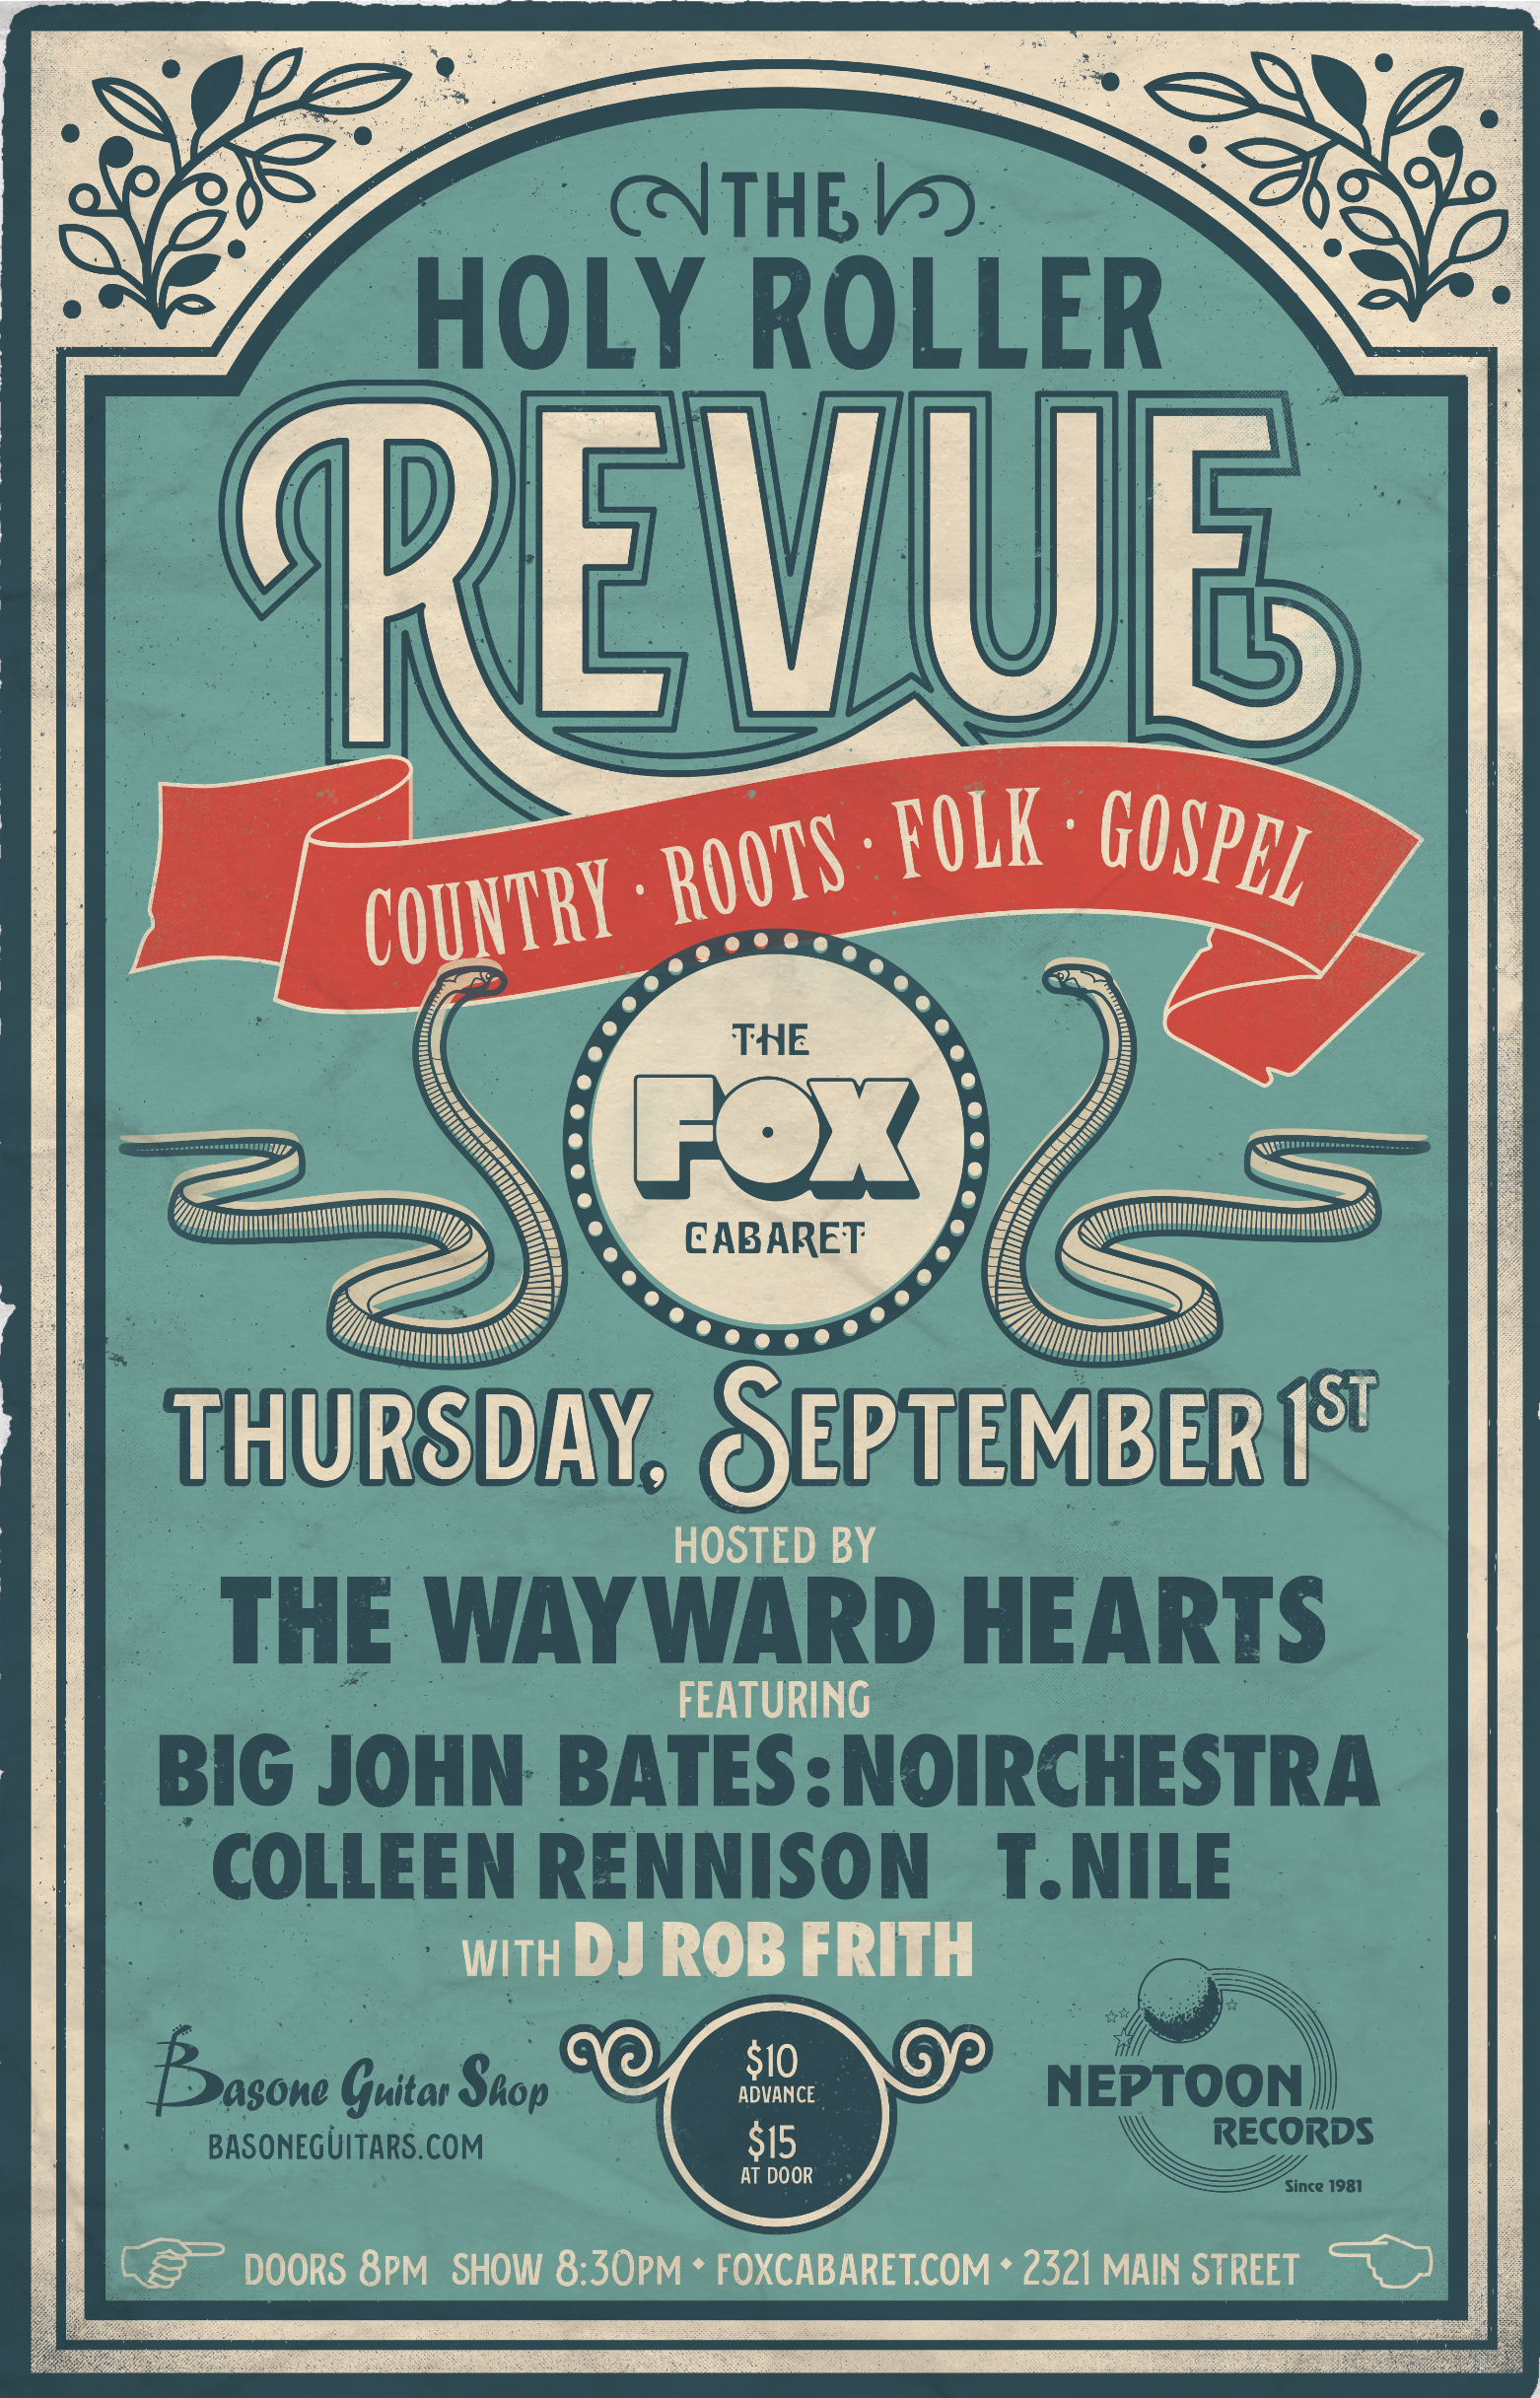 Vintage inspired #Poster design for Country/Roots/Folk Music Series in  Vancouver | Music poster design, Concert series poster, Country festivals